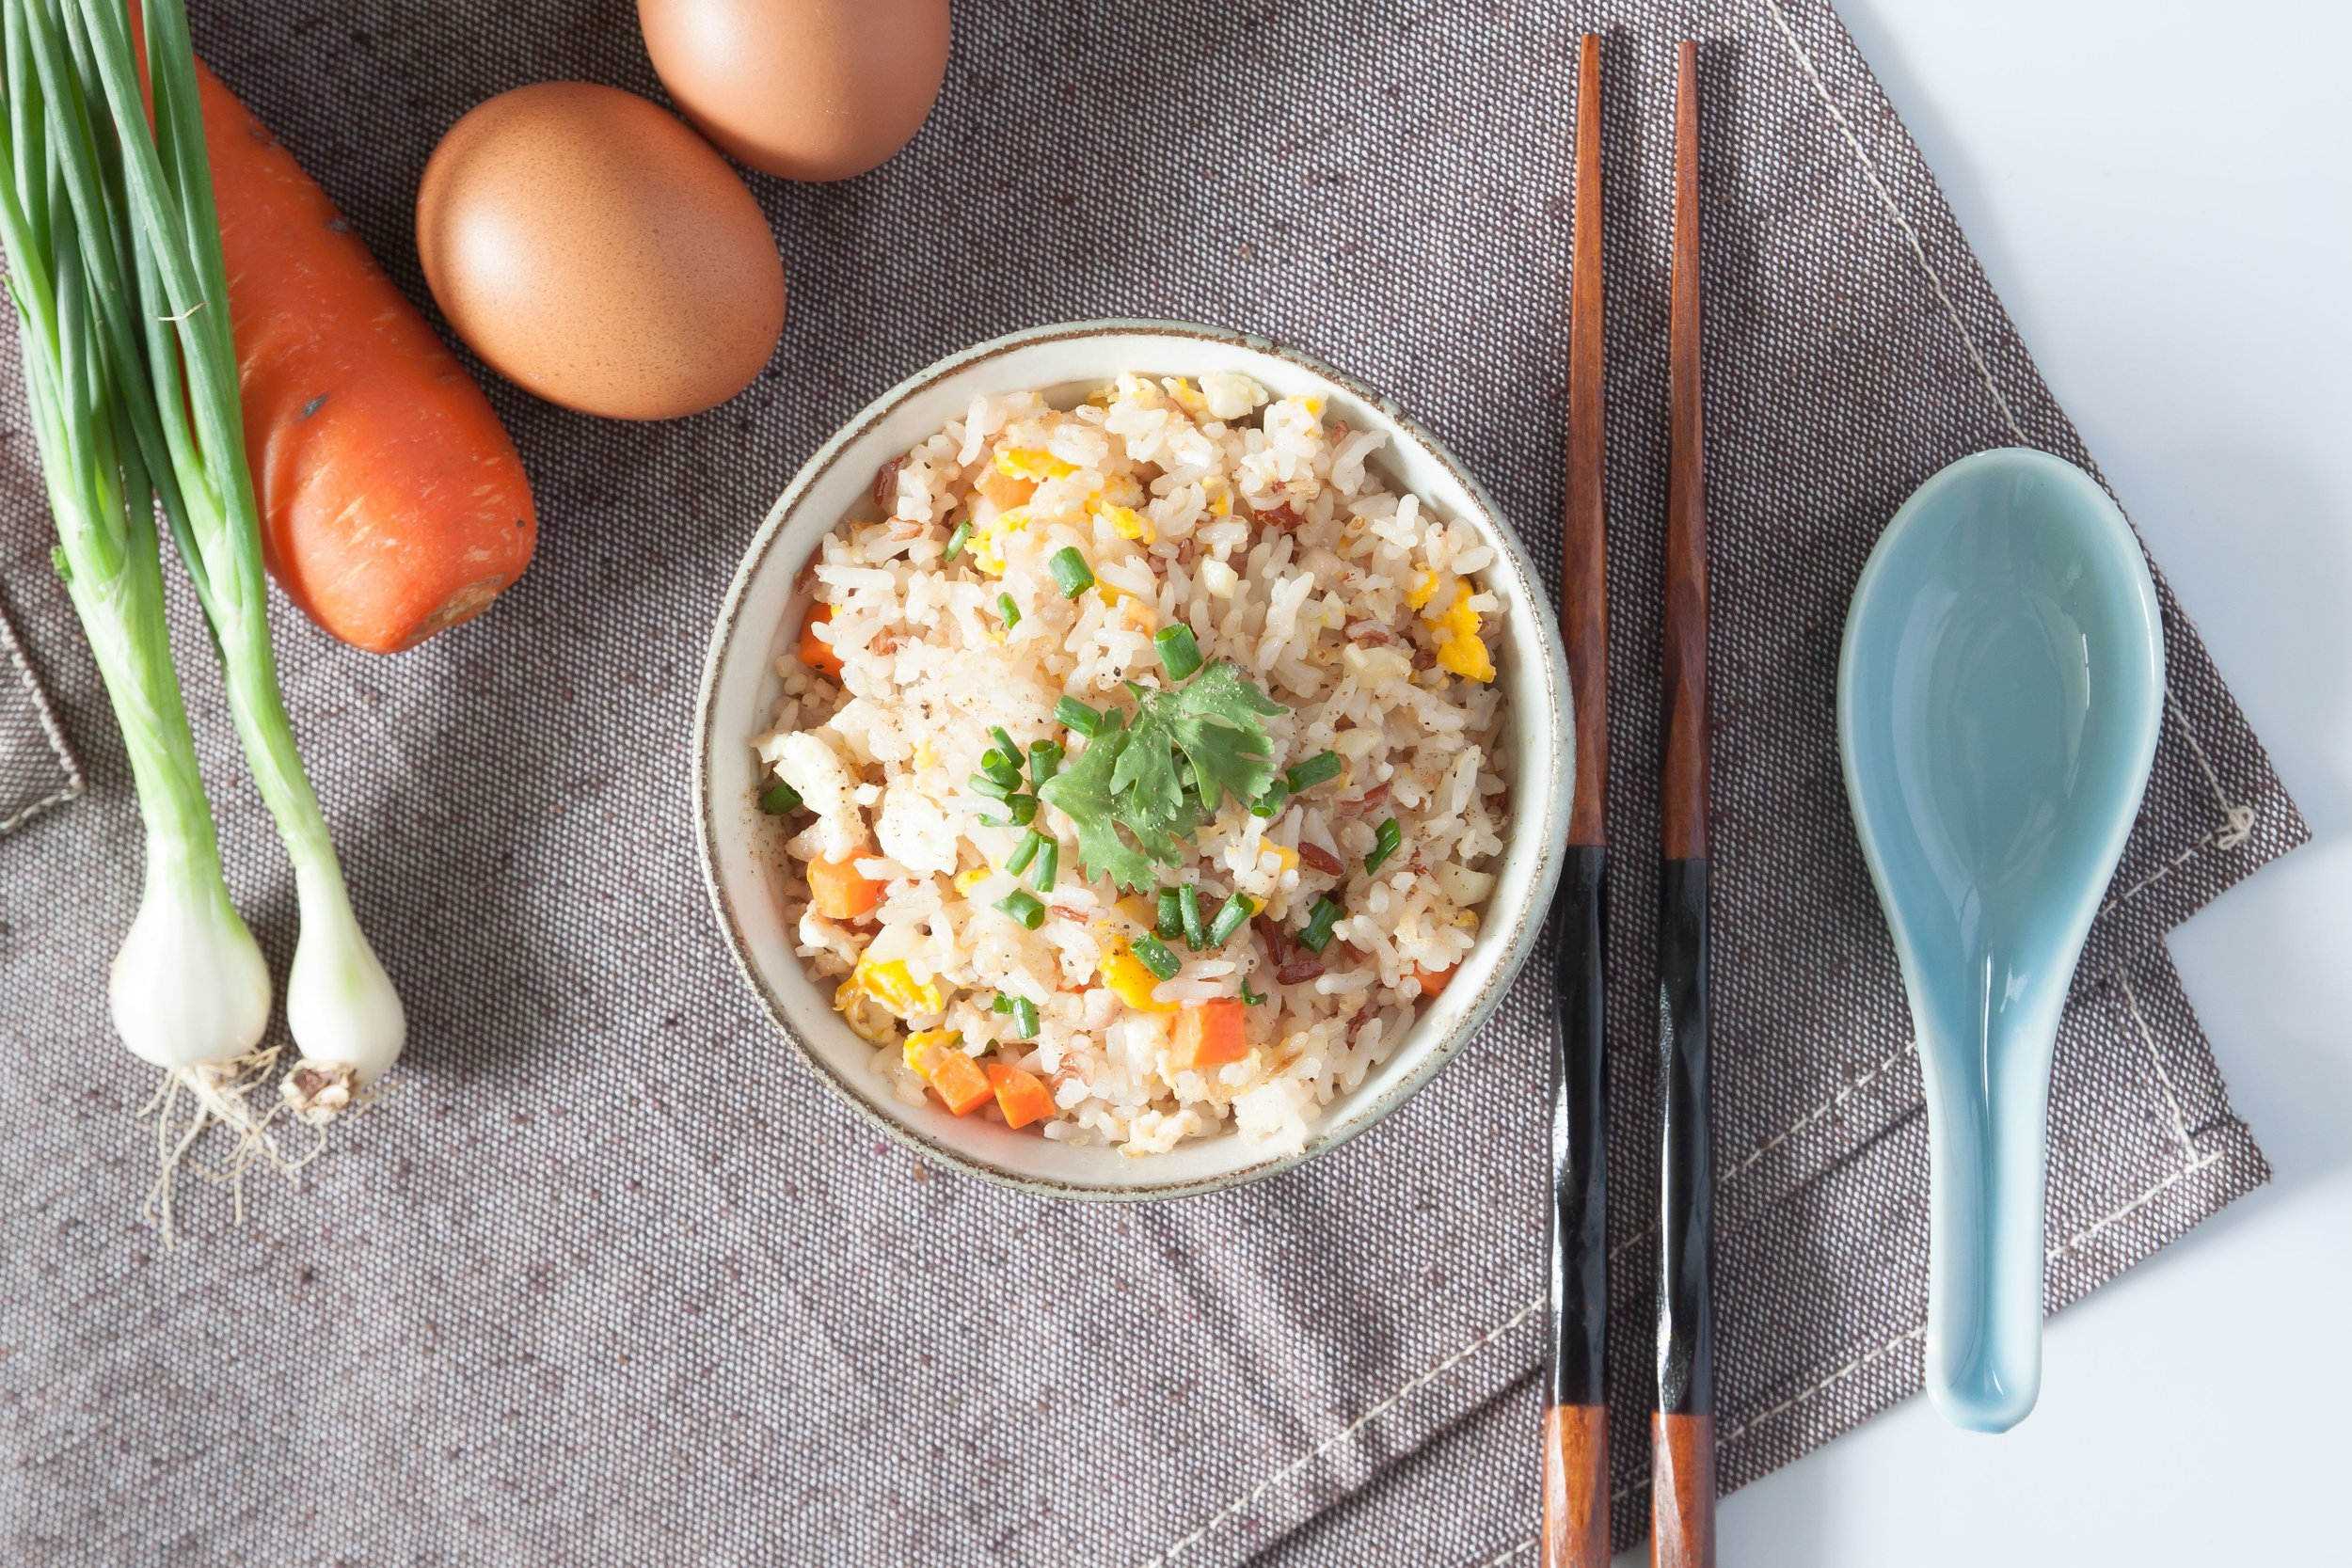 Vegetable risotto with tofu - TOP Recipe of April